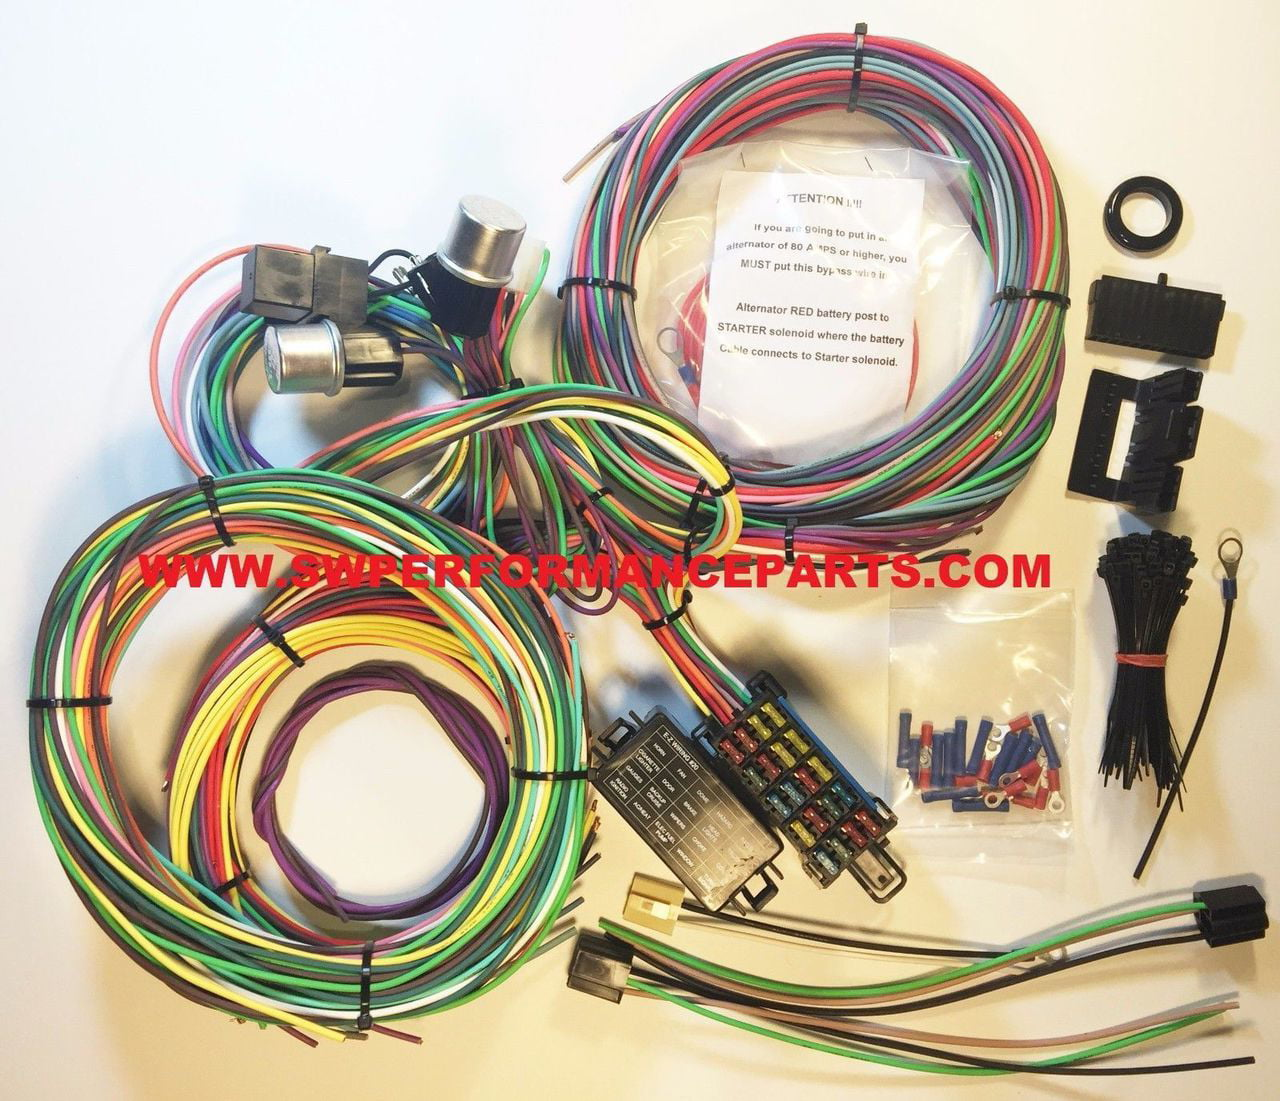 new 21 circuit ez wiring harness mini fuse chevy ford hotrods universal xl wires swpp EZ Wiring Harness Mopar